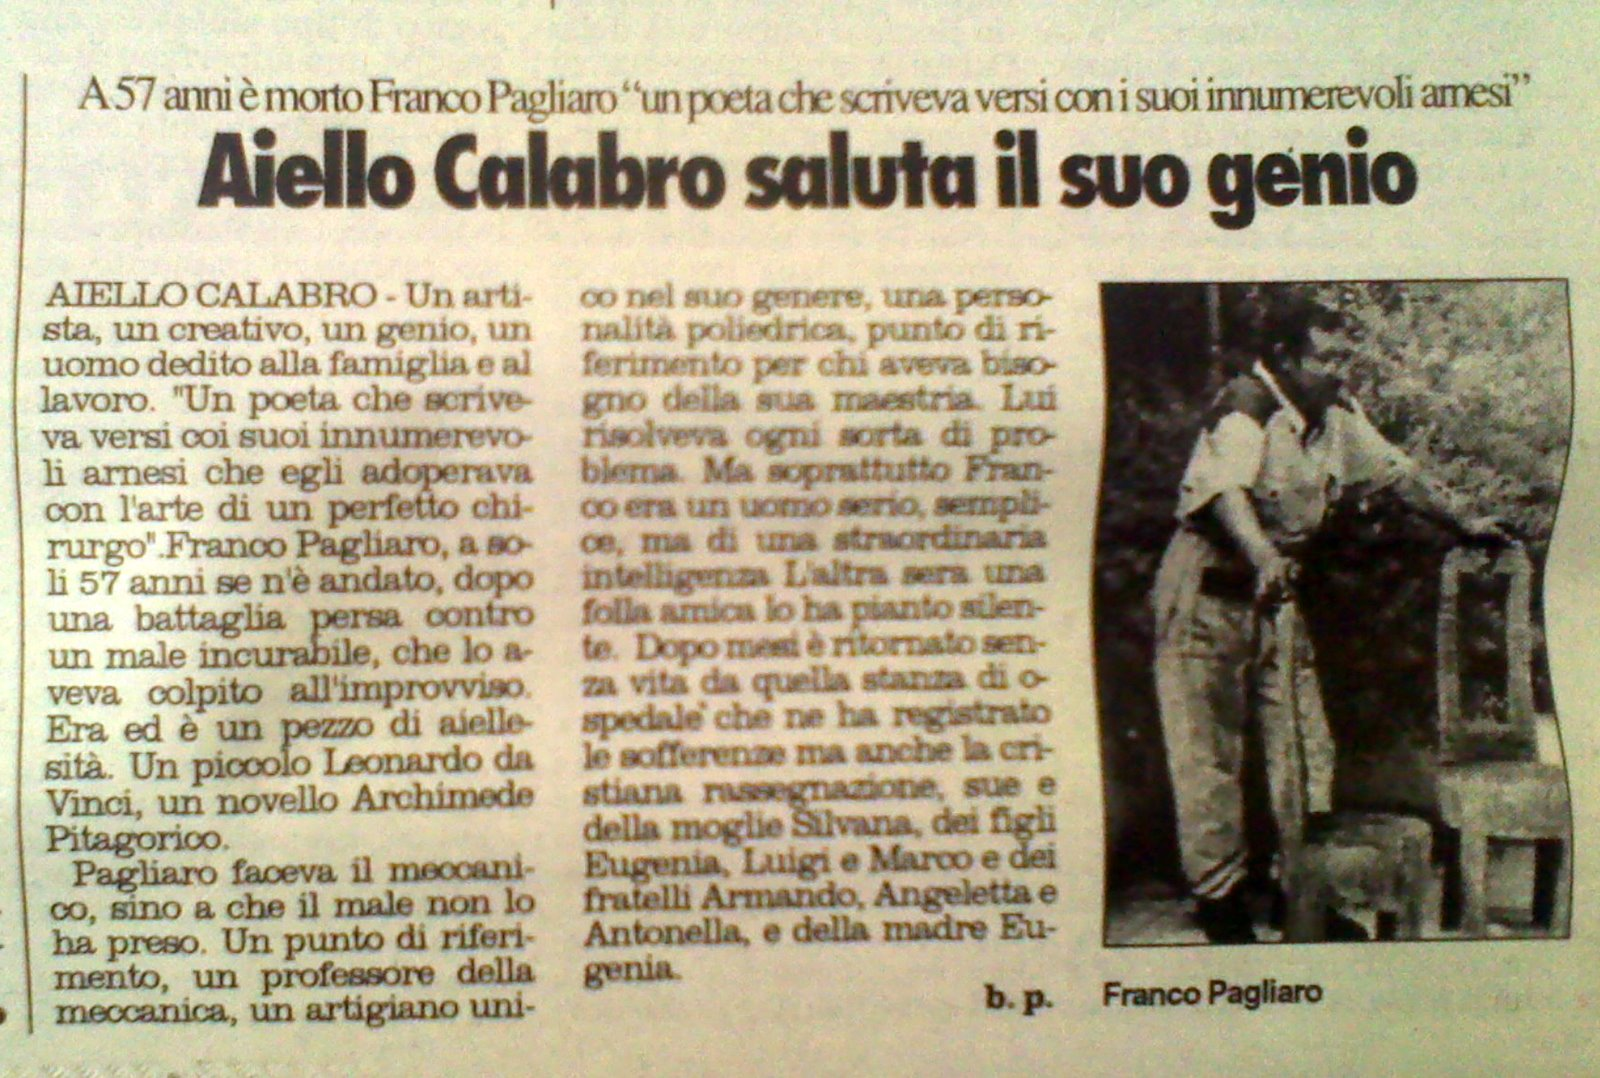 Thumbnail image for /public/upload/2011/7/634469188954439793_Il Quotidiano 23.07.2001.jpg